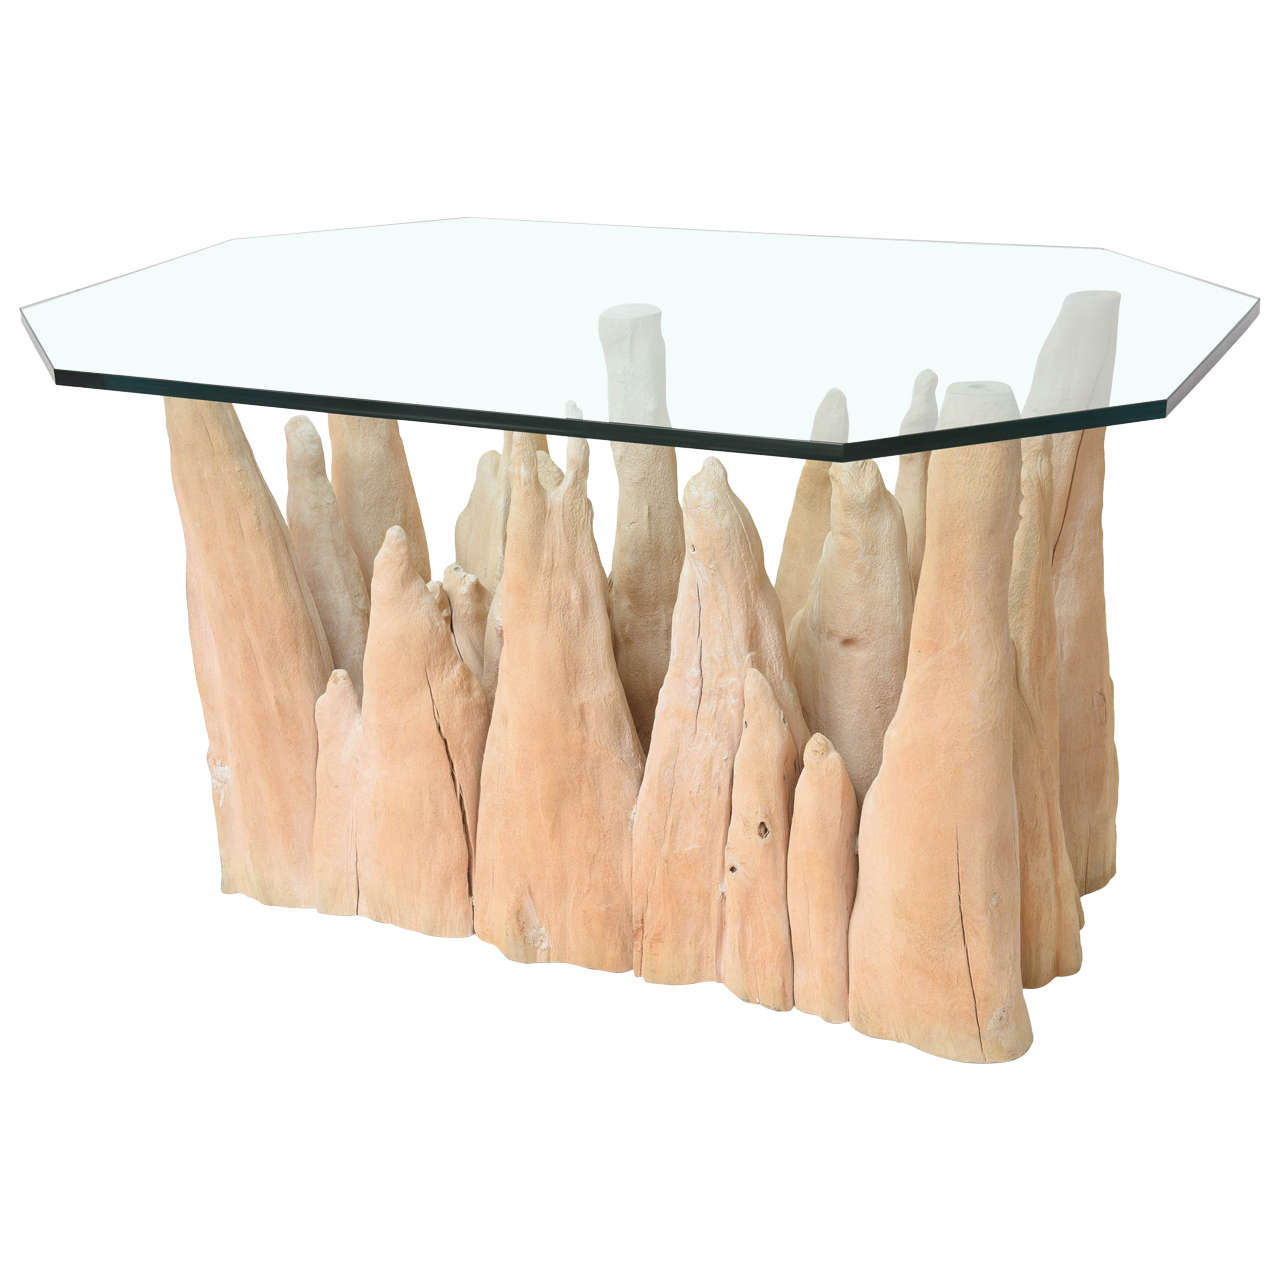 Tree Trunk Dining Table Images Dining Table Ideas : X from sorahana.info size 1280 x 1280 jpeg 74kB